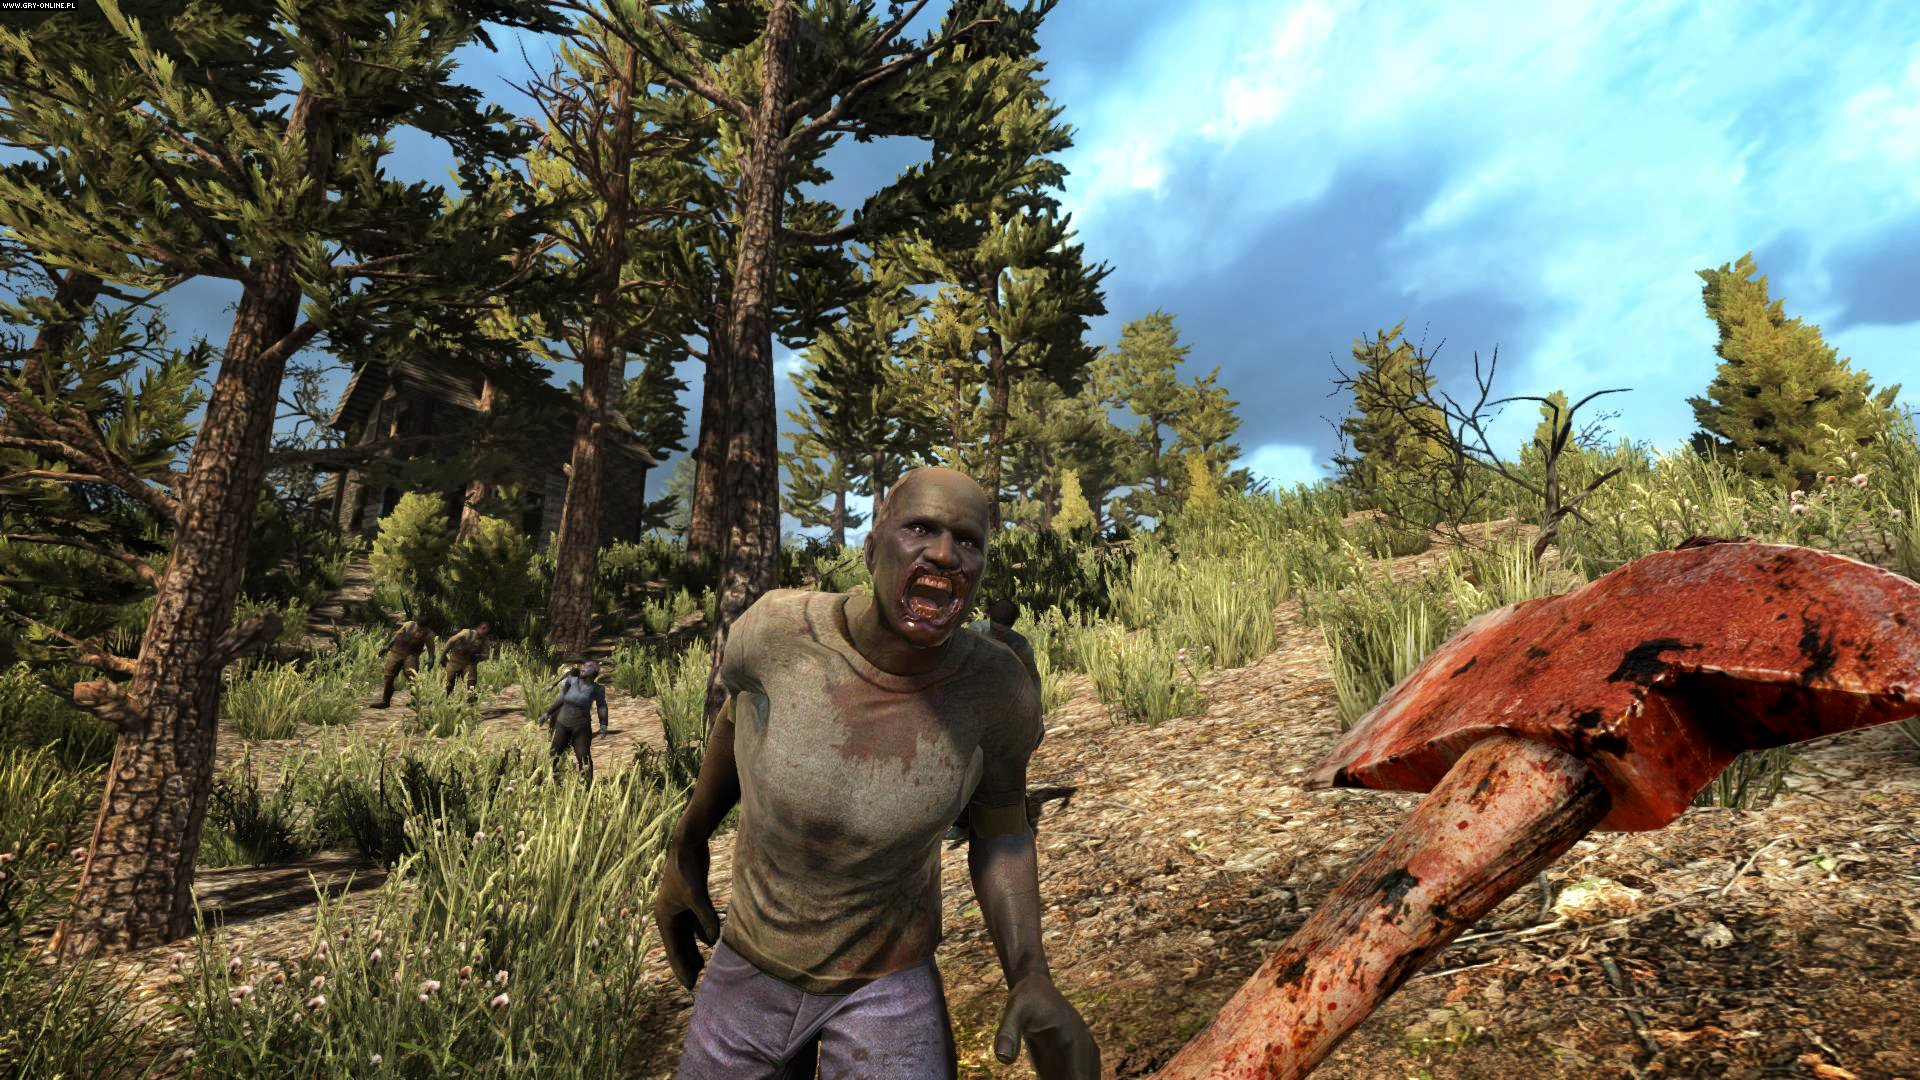 7 Days to Die PC, PS4, XONE Gry Screen 4/11, The Fun Pimps Entertainment